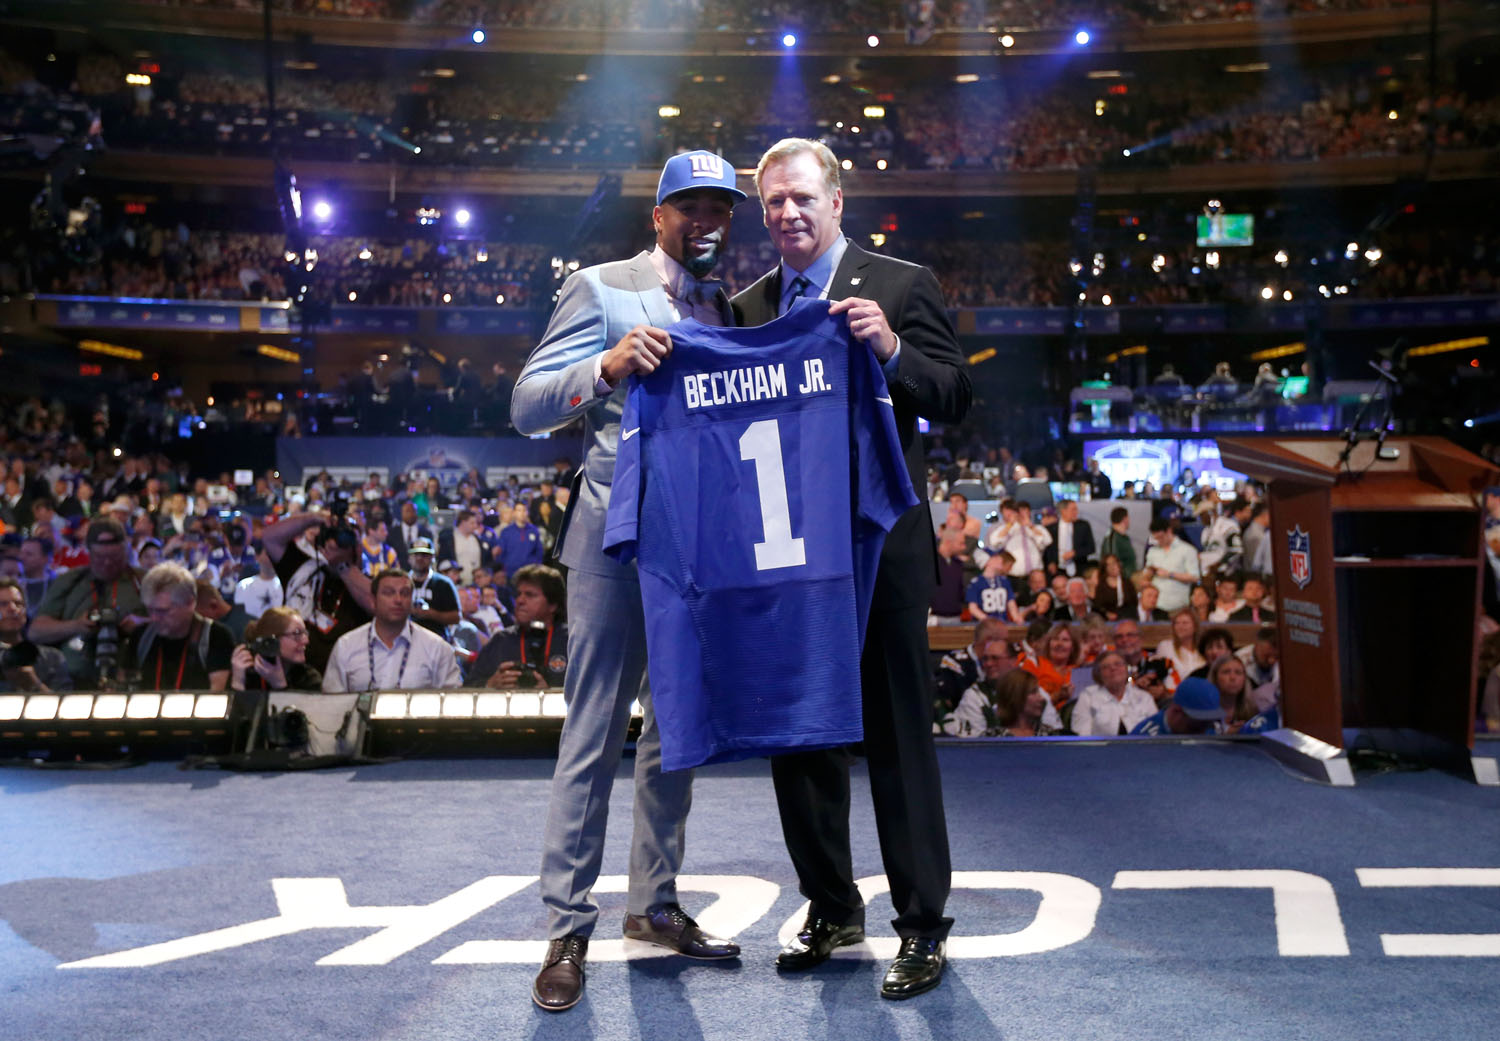 Odell Beckham Jr. Poses With NFL Commissioner Roger Goodell After Being  Selected By The New York Giants With The 12th Overall Pick Of The 2014 NFL  Draft.